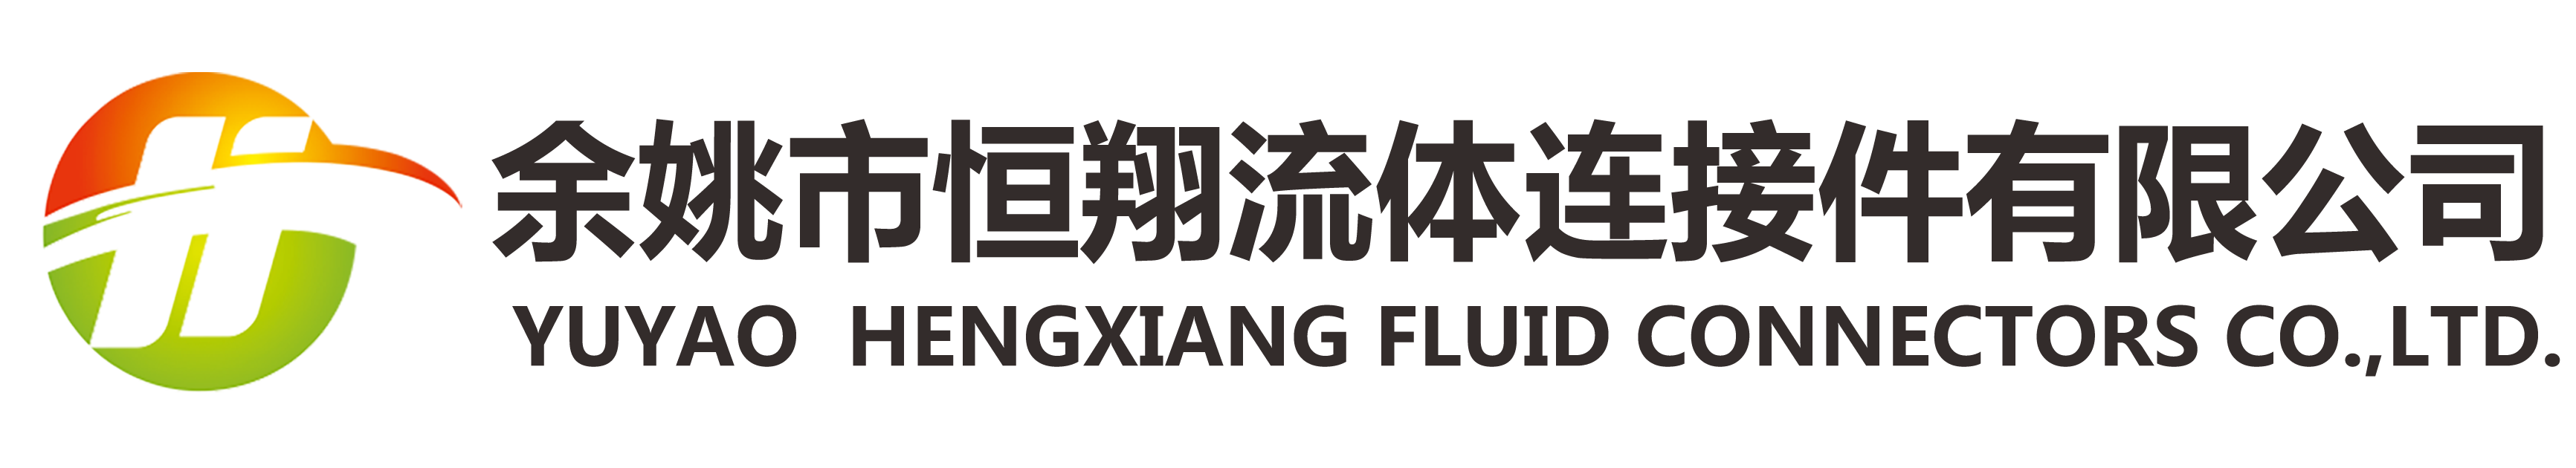 YUYAO HENGXIANG FLUID CONNECTORS CO.,LTD. LOGO